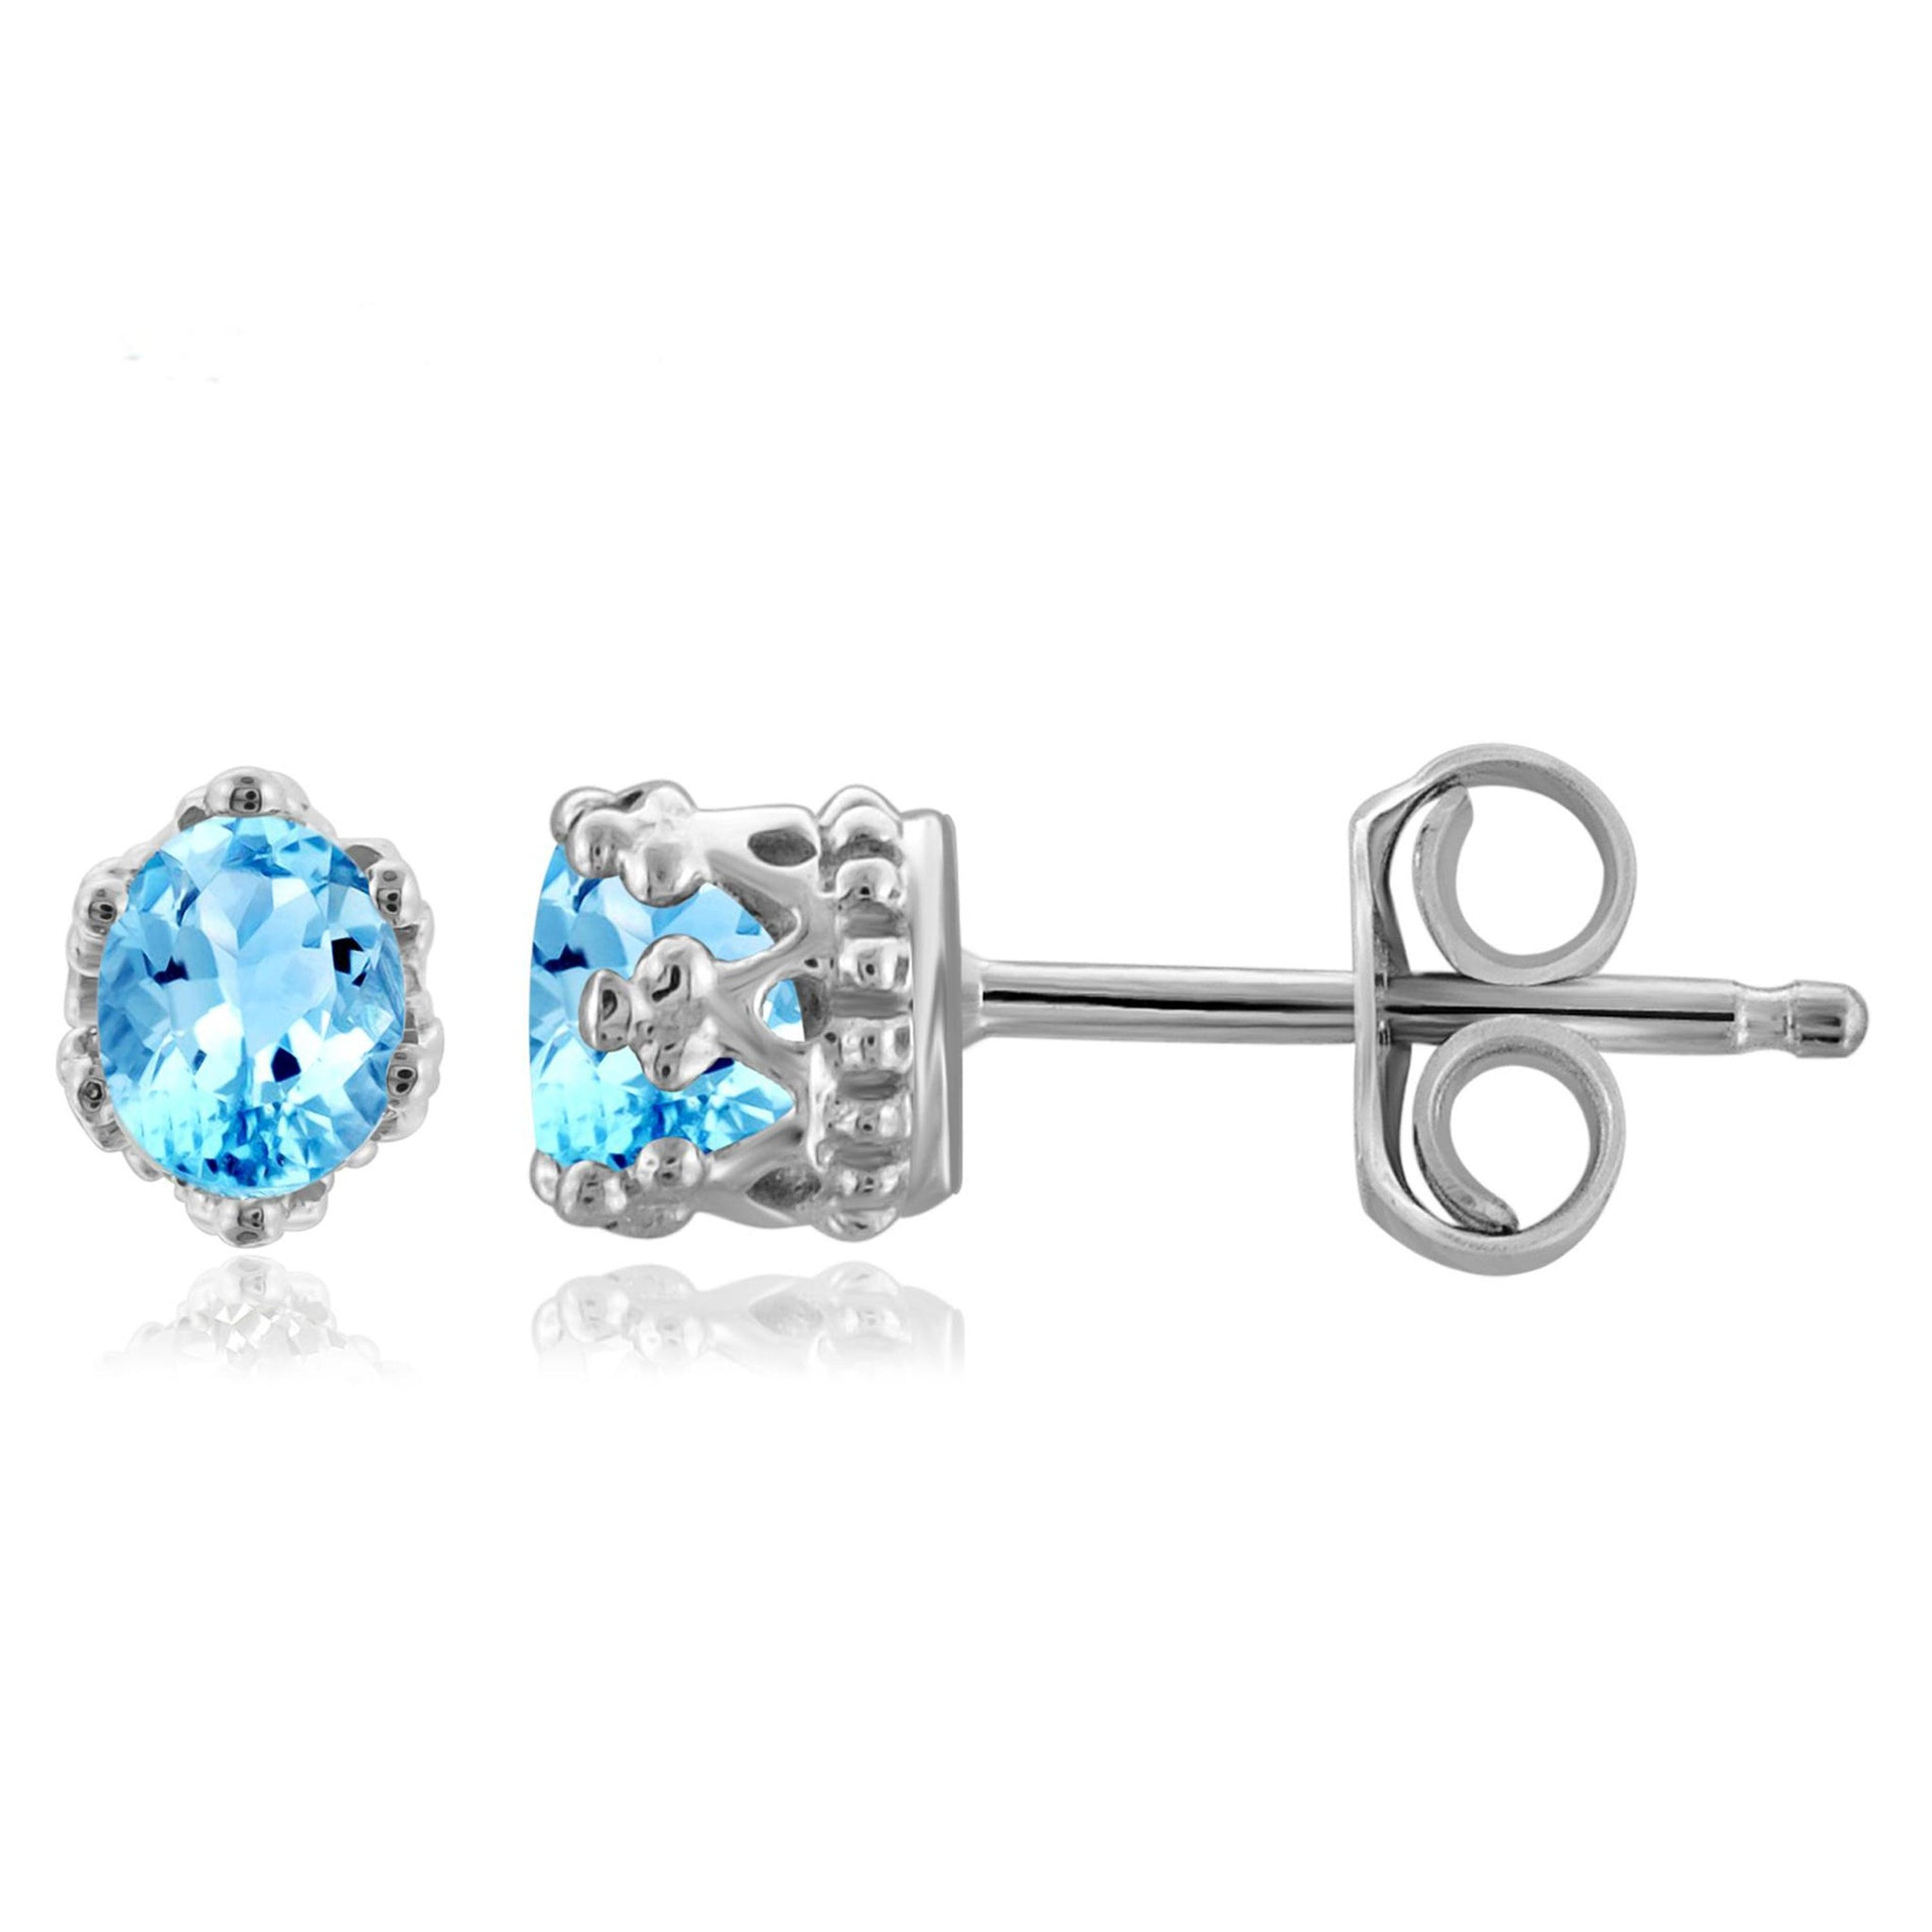 JewelonFire 1/3 Carat T.G.W. Blue Topaz Sterling Silver Crown Earrings - Assorted Colors